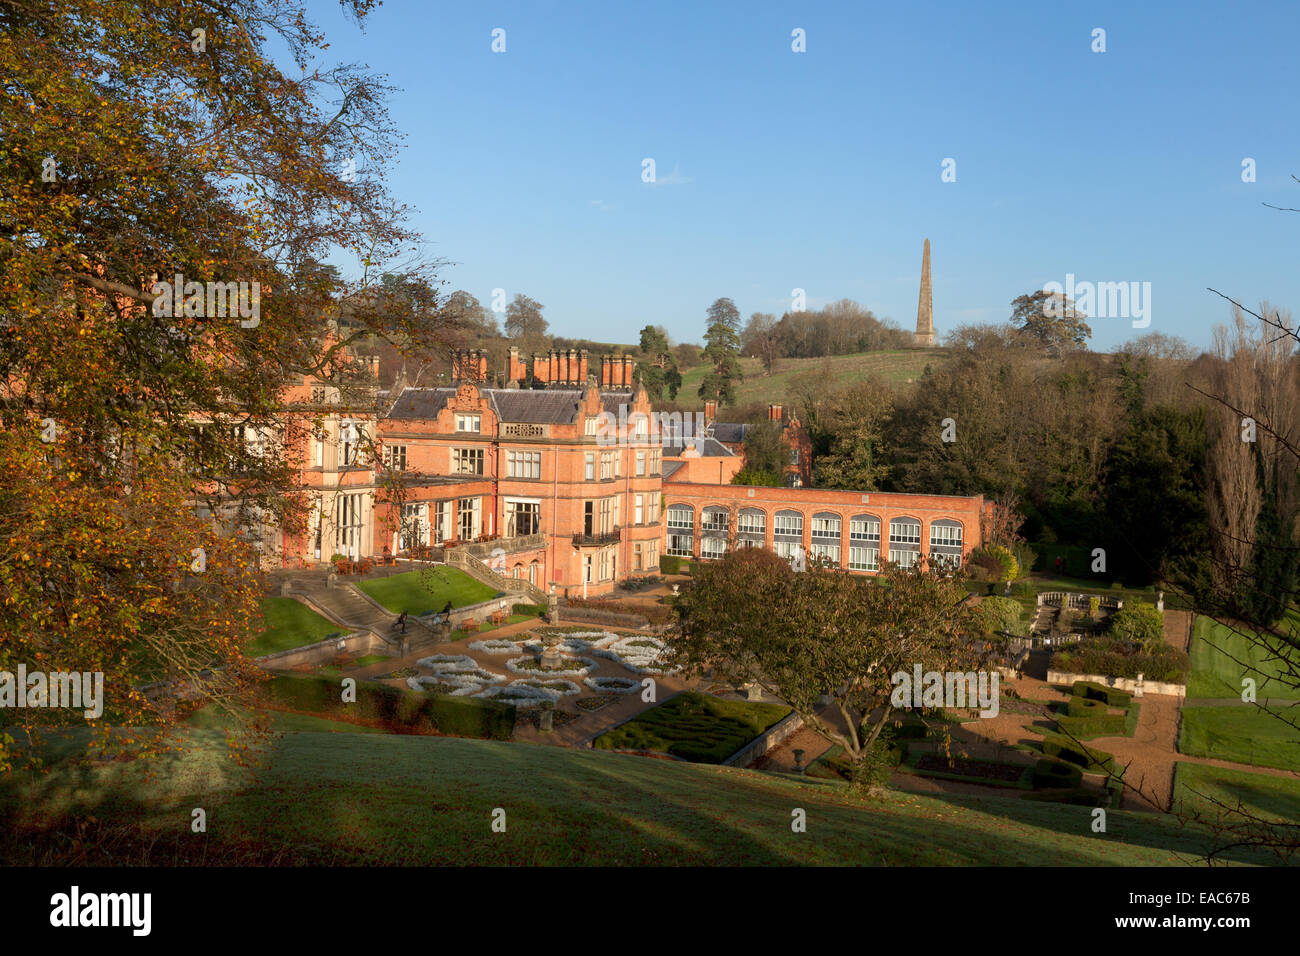 The Menzies Welcombe Hotel and Spa, Stratford upon Avon, Warwickshire England UK - Stock Image